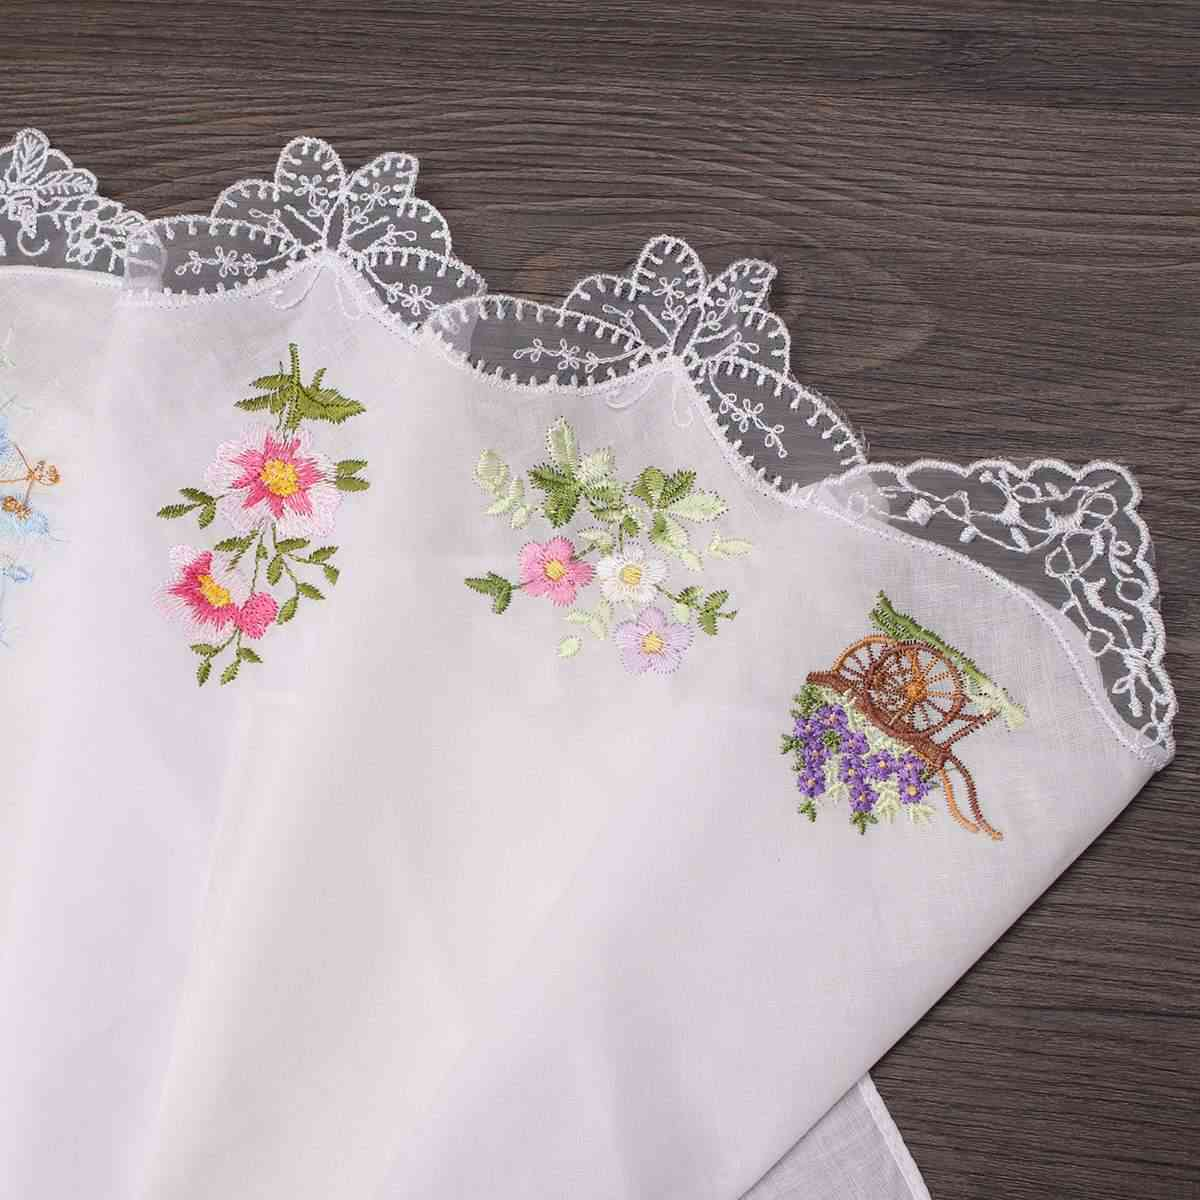 Vintage Cotton Women Hankies Embroidered Butterfly Lace Flower Hanky